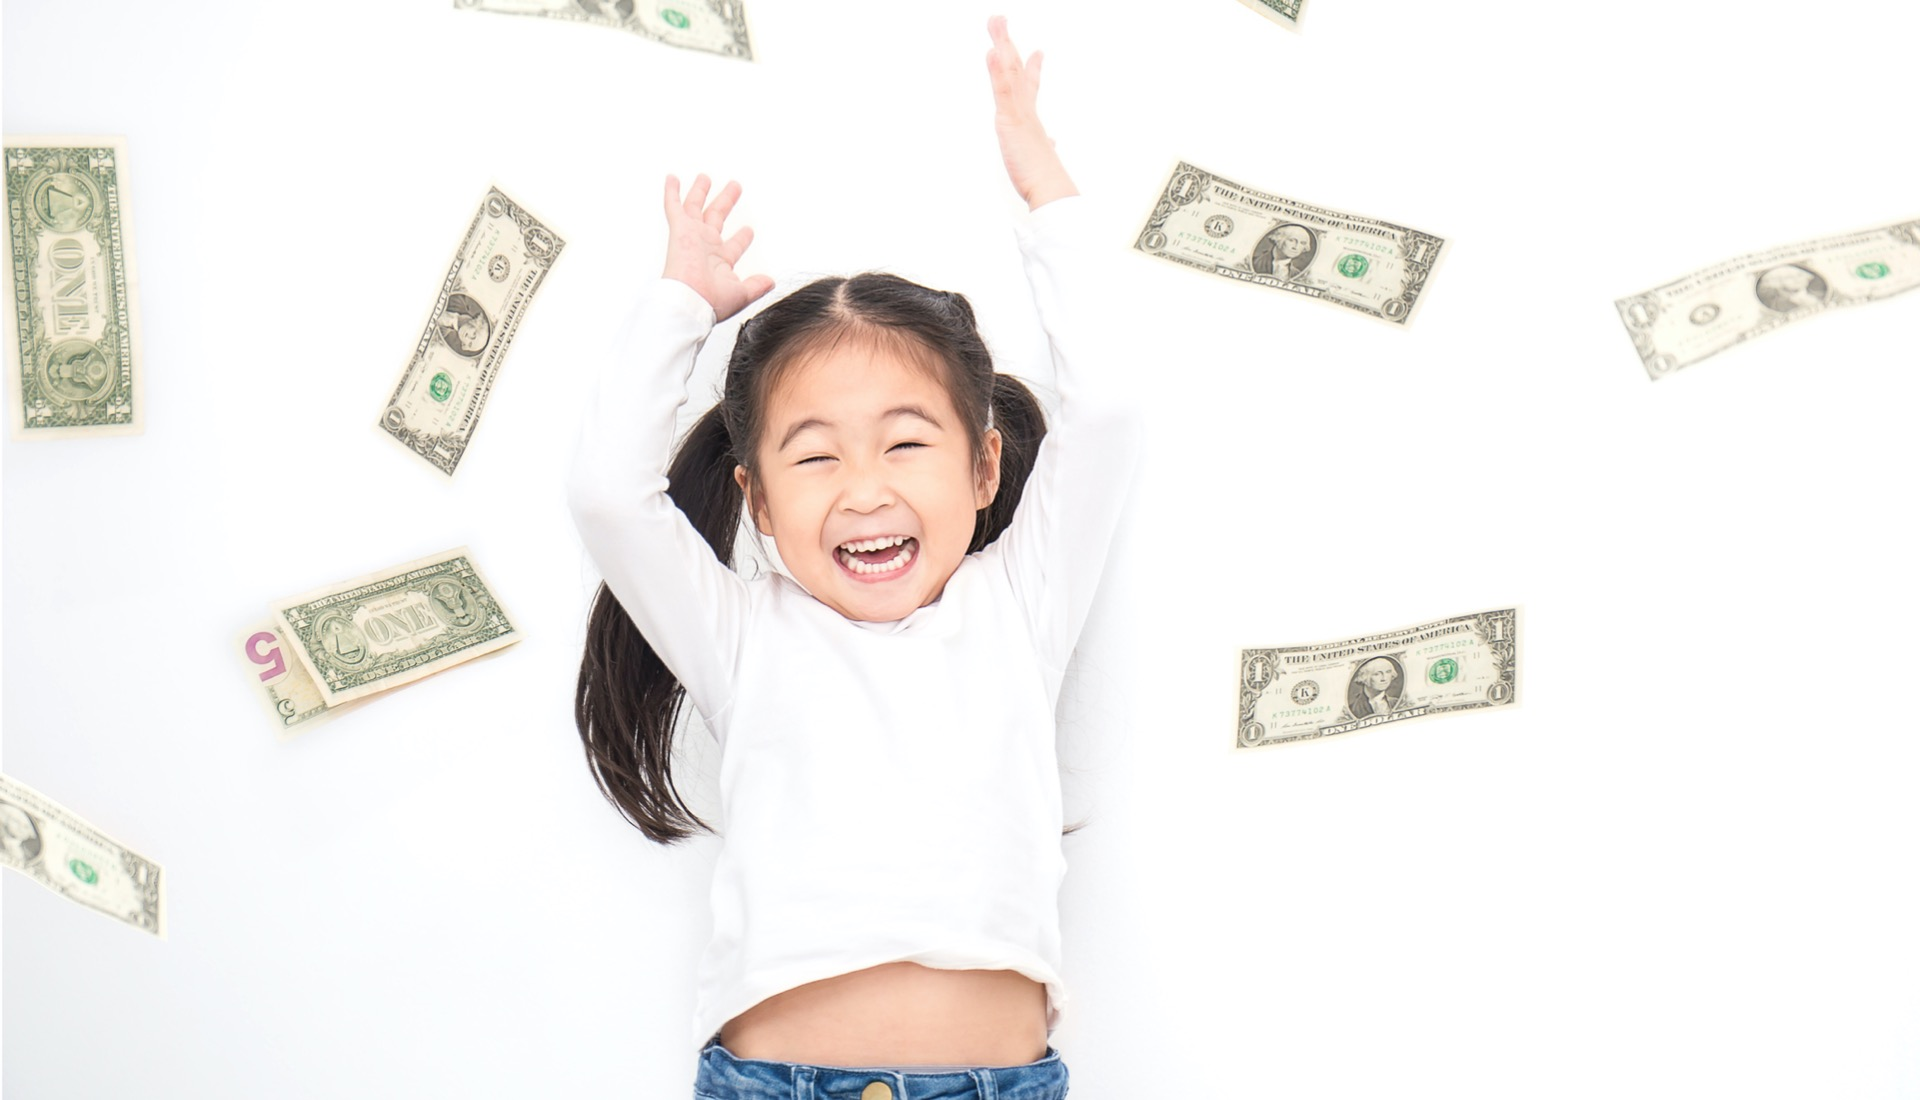 30 Seconds: Happy Money Isn't About Monetary Wealth, It's a State of Mind – 5 Ways to Change Your Relationship With Money